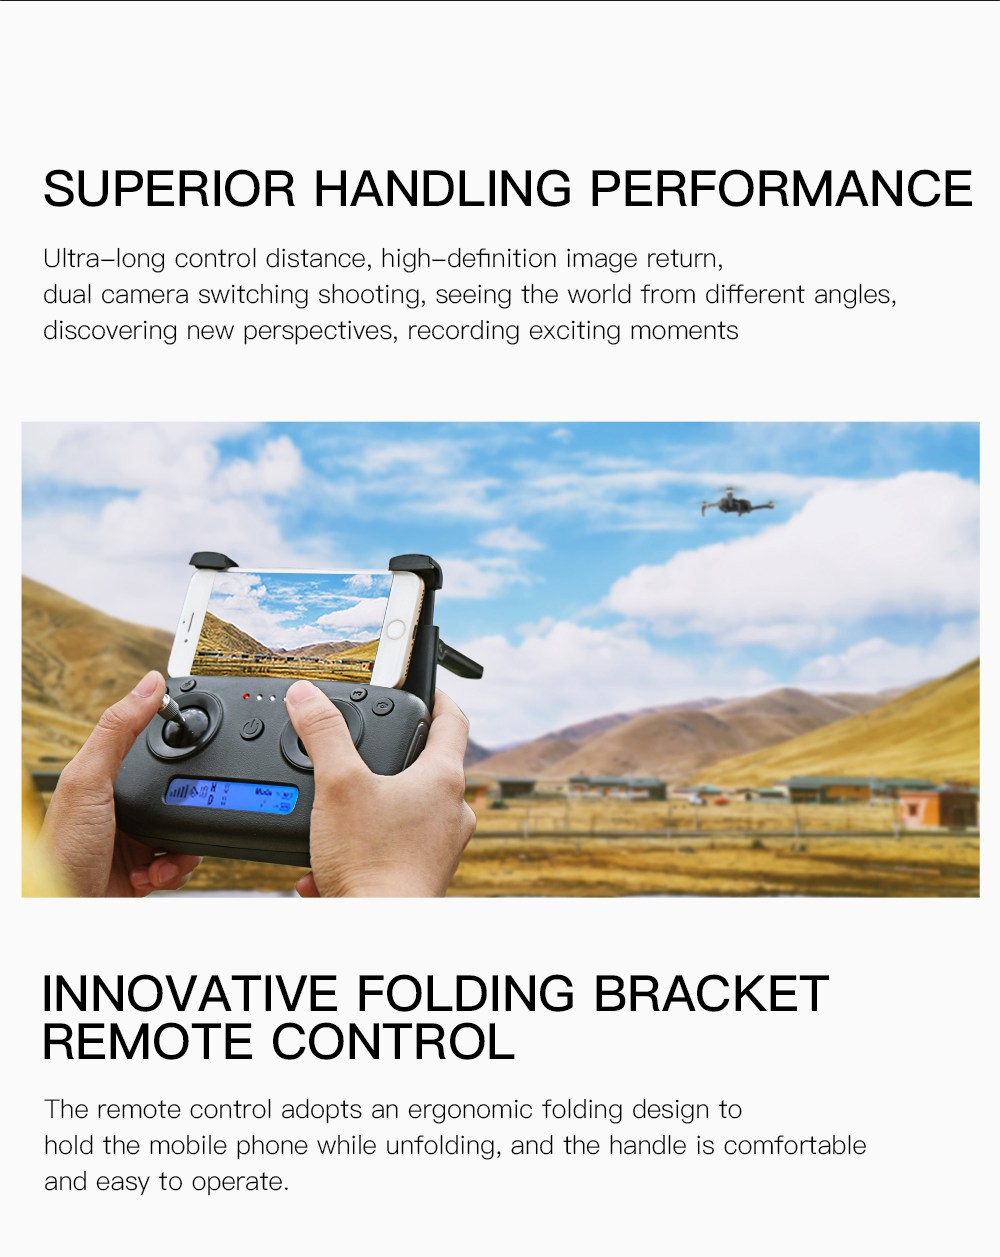 ZLRC SG906 Beast 1080P 5G WiFi FPV Foldable RC Drone Dual GPS Optical Flow Positioning RTF - Black